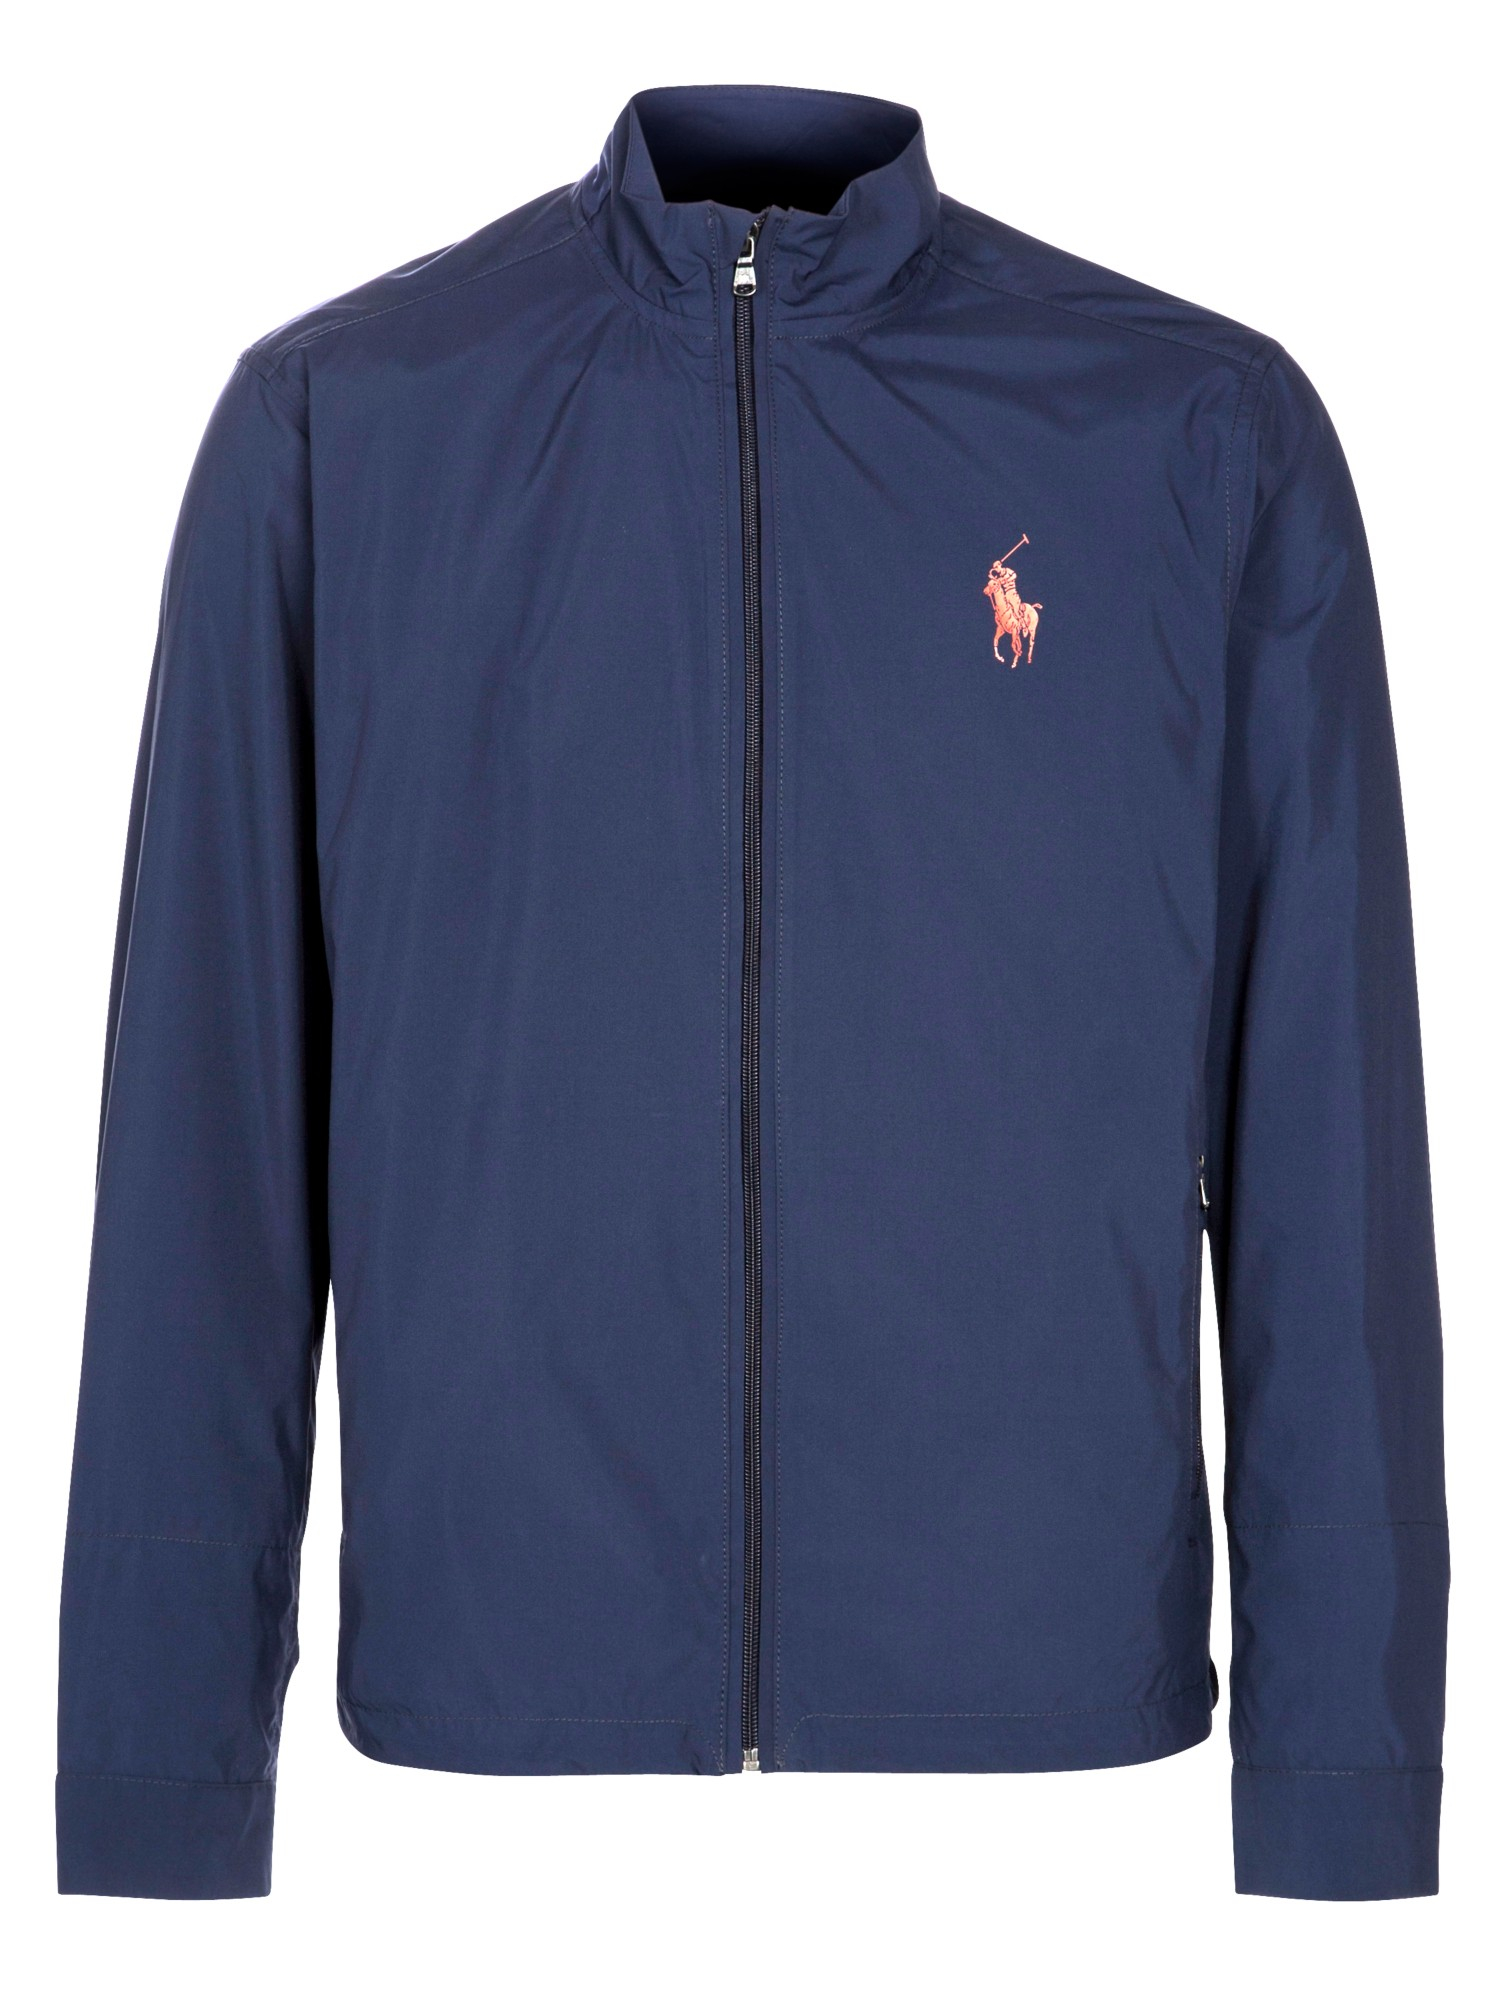 polo ralph lauren windbreaker jacket in blue for men navy. Black Bedroom Furniture Sets. Home Design Ideas